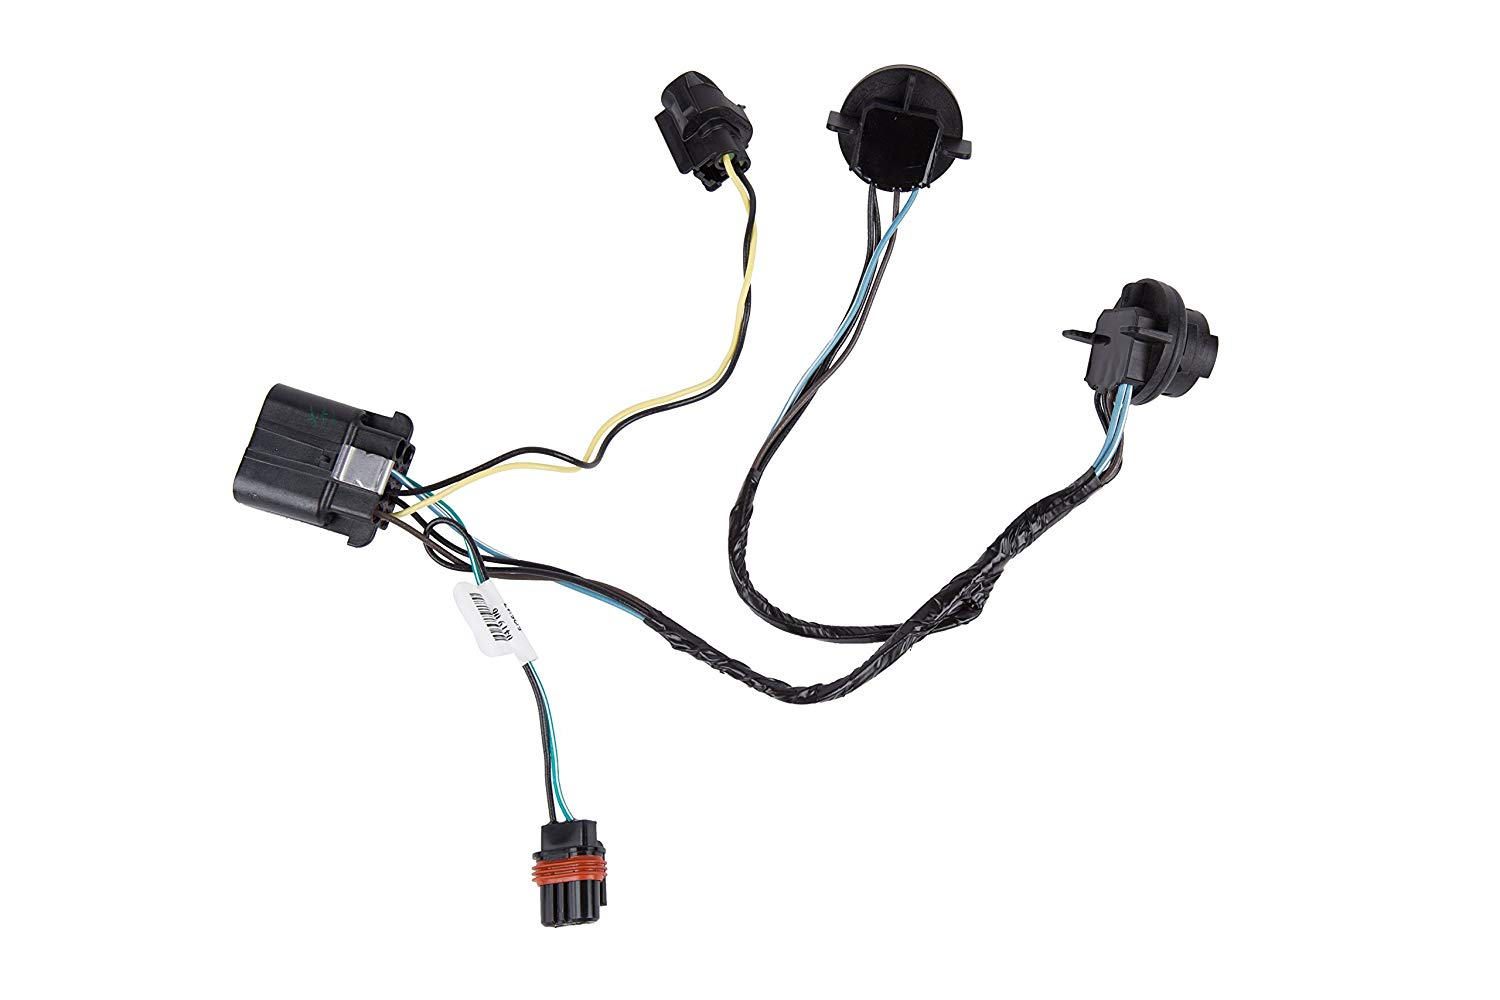 hight resolution of cheap headlight switch wiring find headlight switch wiring deals on hot rod headlight switch wiring acdelco headlight switch wiring